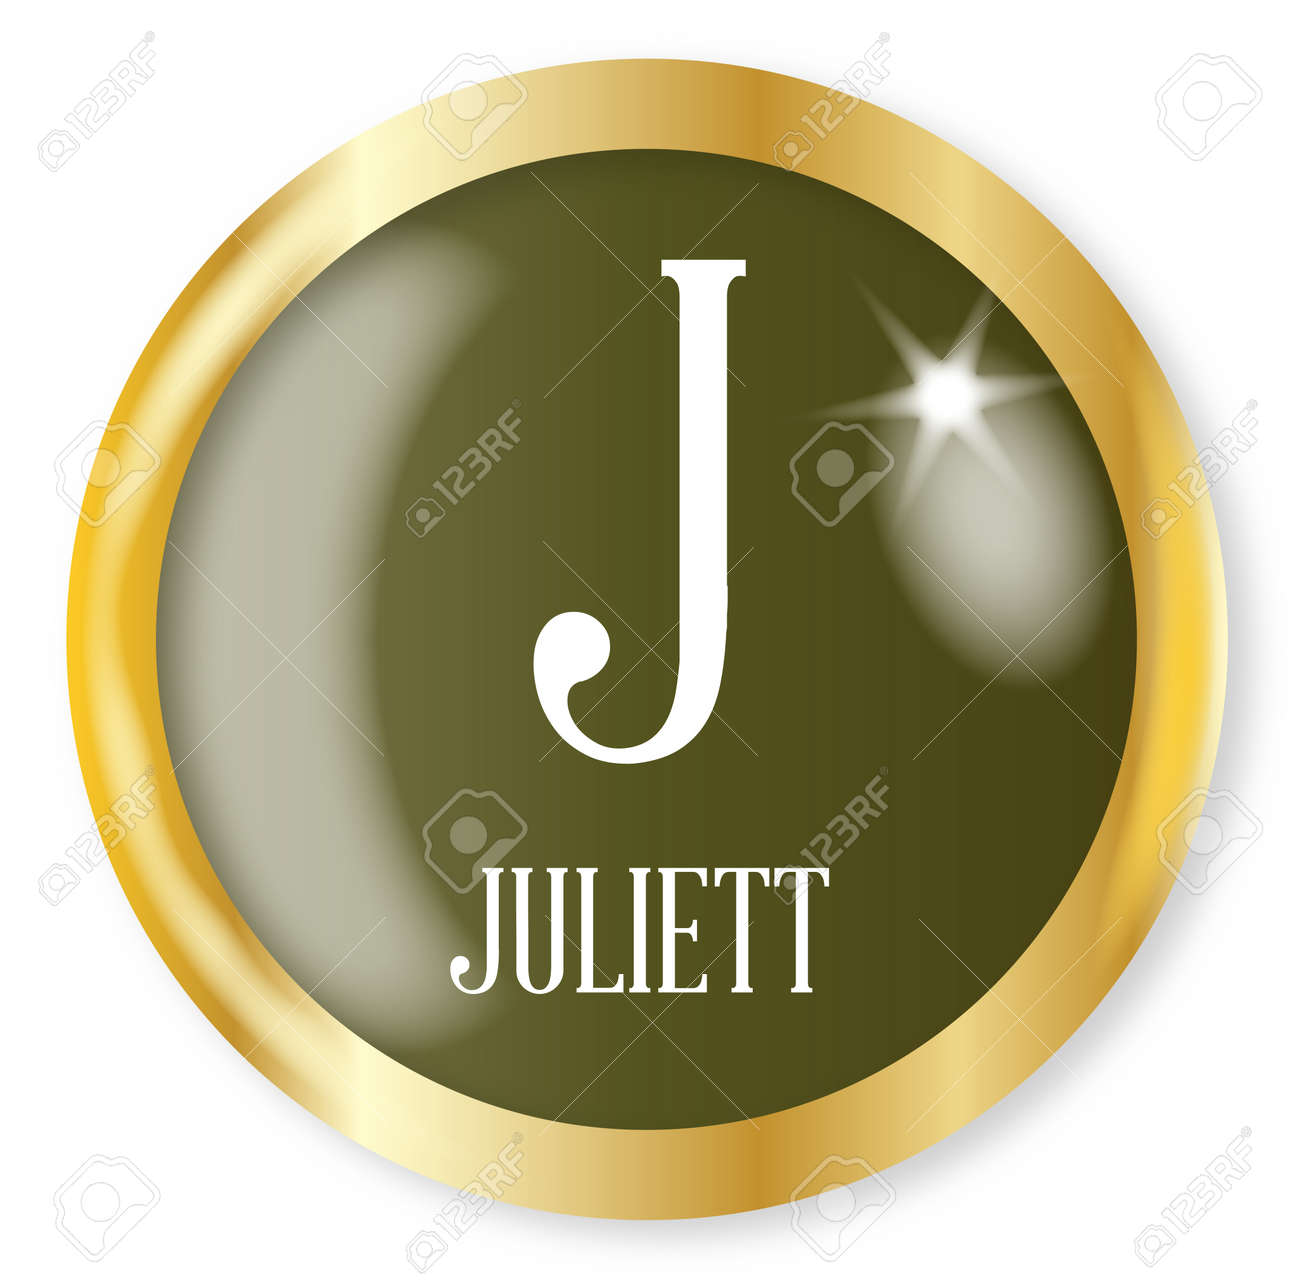 J For Juliett Button From The Nato Phonetic Alphabet With A Gold Royalty Free Cliparts Vectors And Stock Illustration Image 77061410